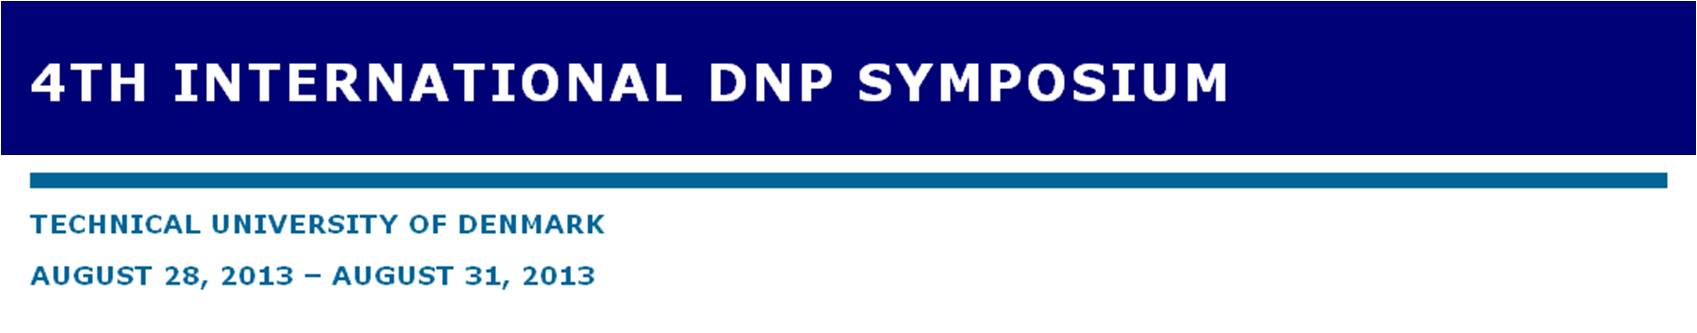 Poster presentation at 4th International DNP Symposium